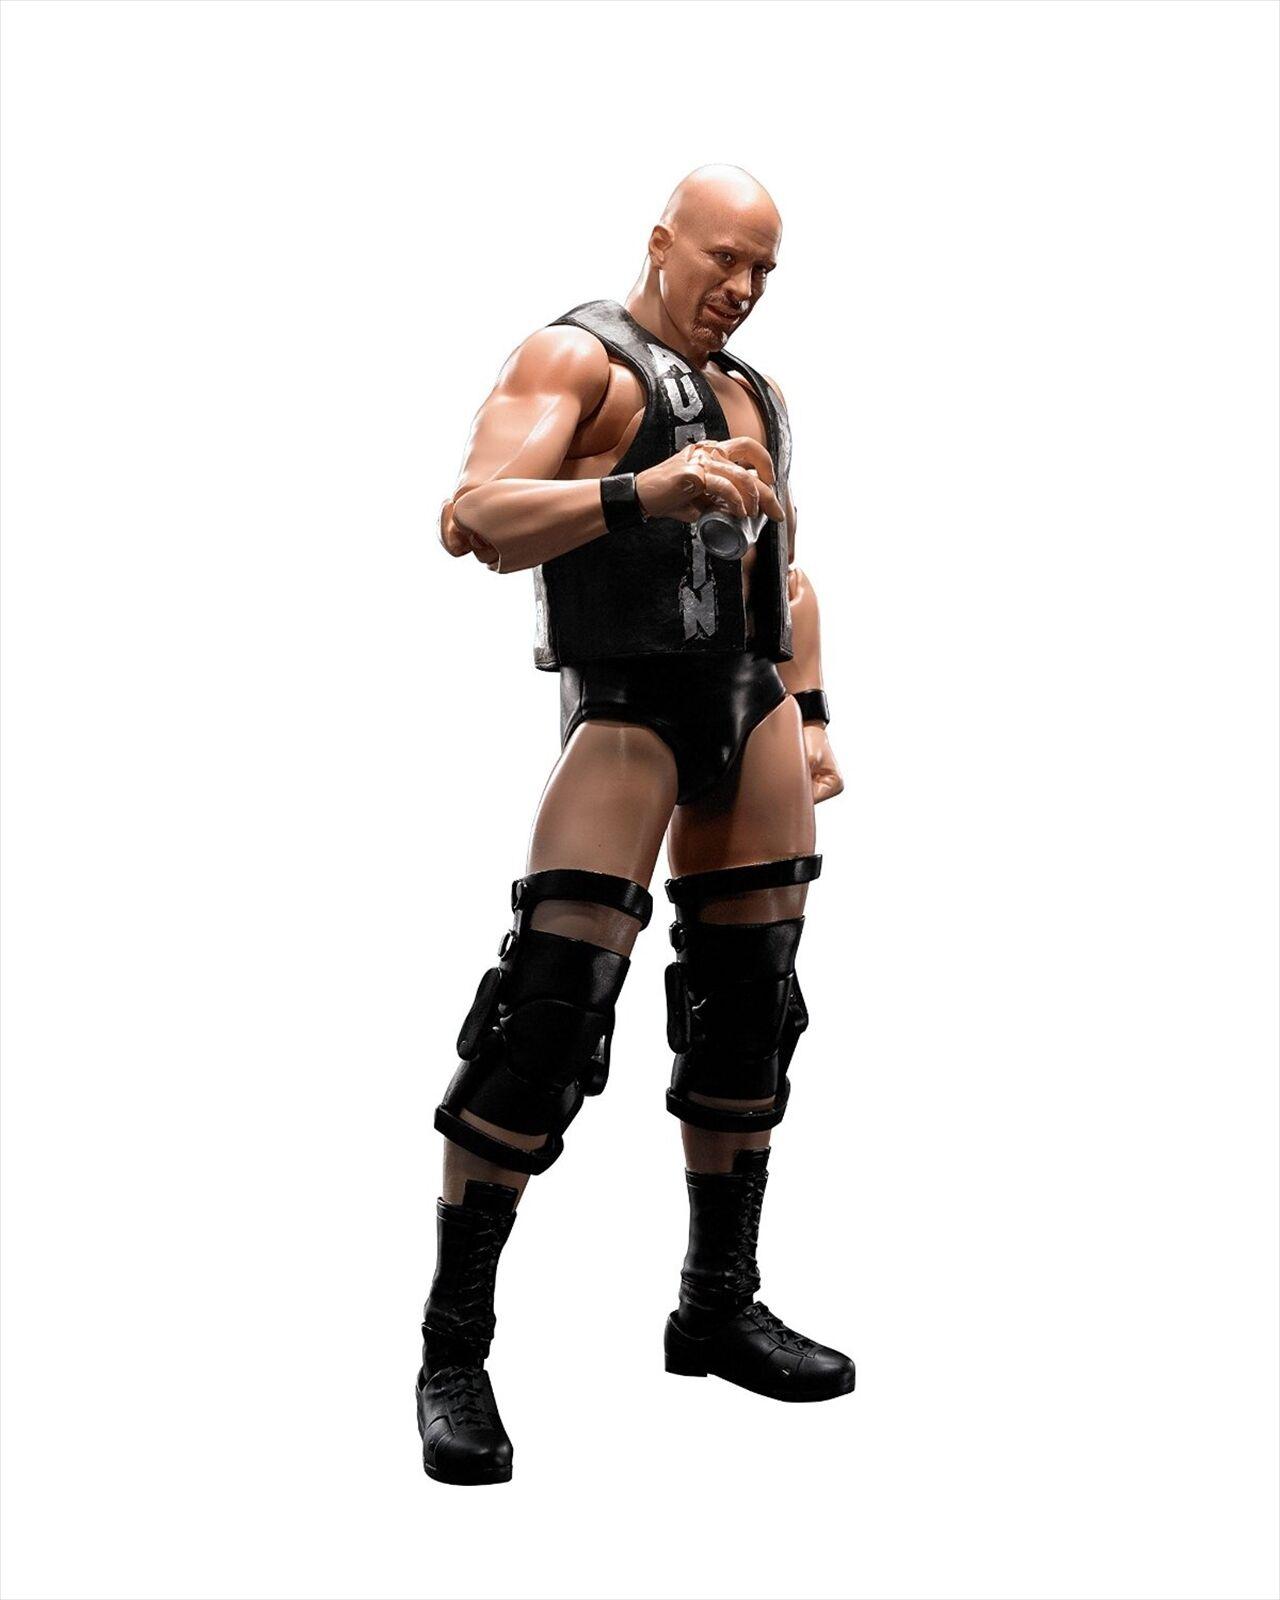 Bandai Tamashii Nations S.H. Figuarts Stone Cold Steve Austin WWE Action Figure